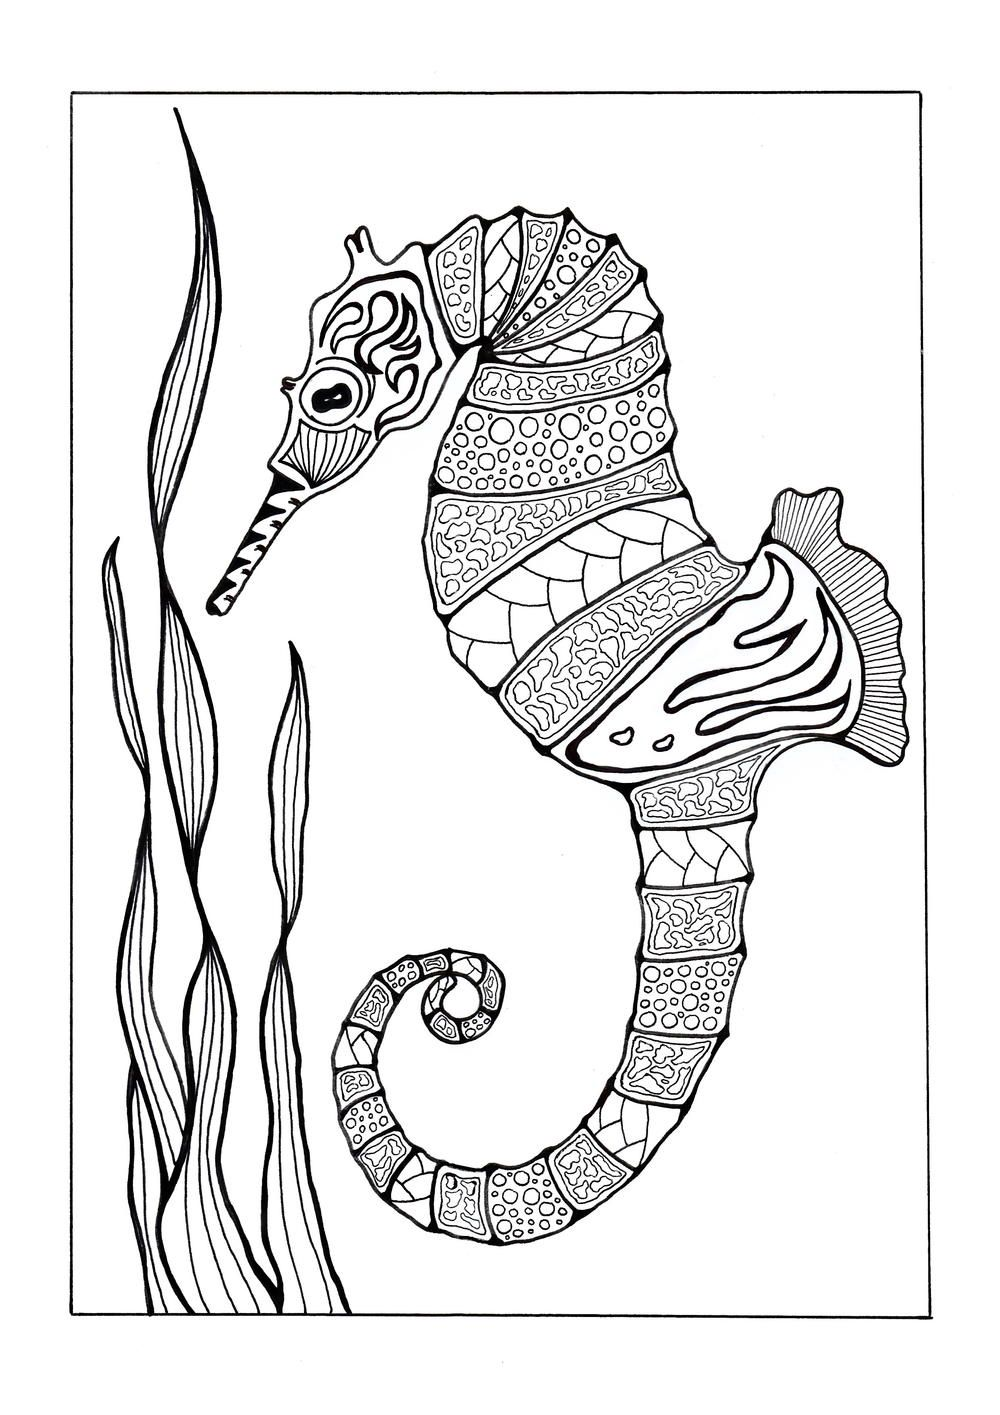 Colorful Seahorse Adult Coloring Page Horse coloring